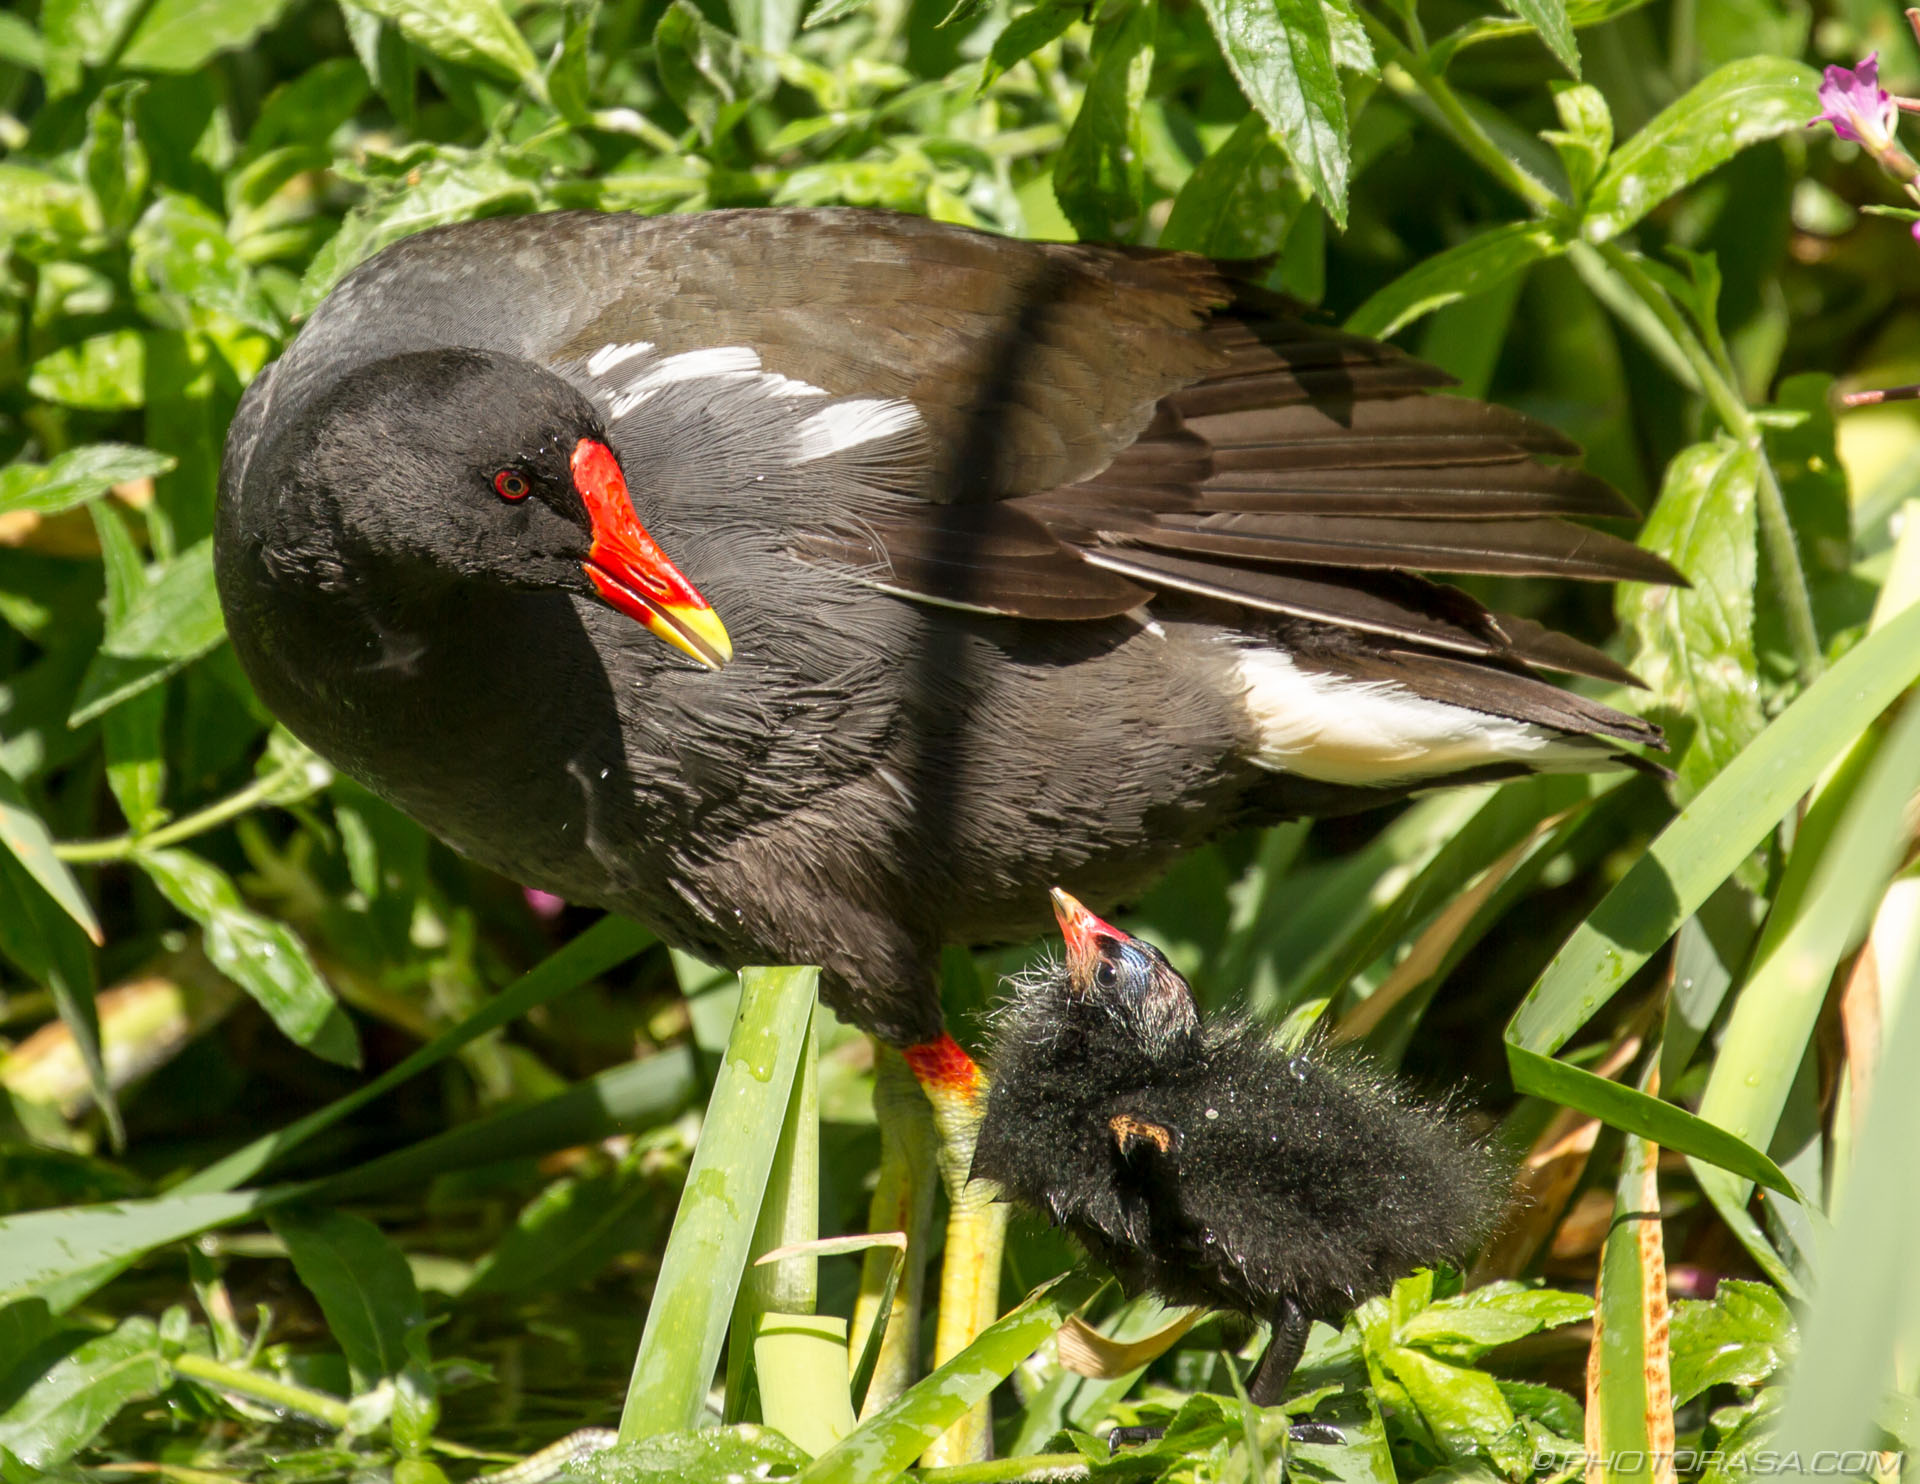 https://photorasa.com/baby-moorhen-and-mother/mother-and-baby-looking-at-each-other/